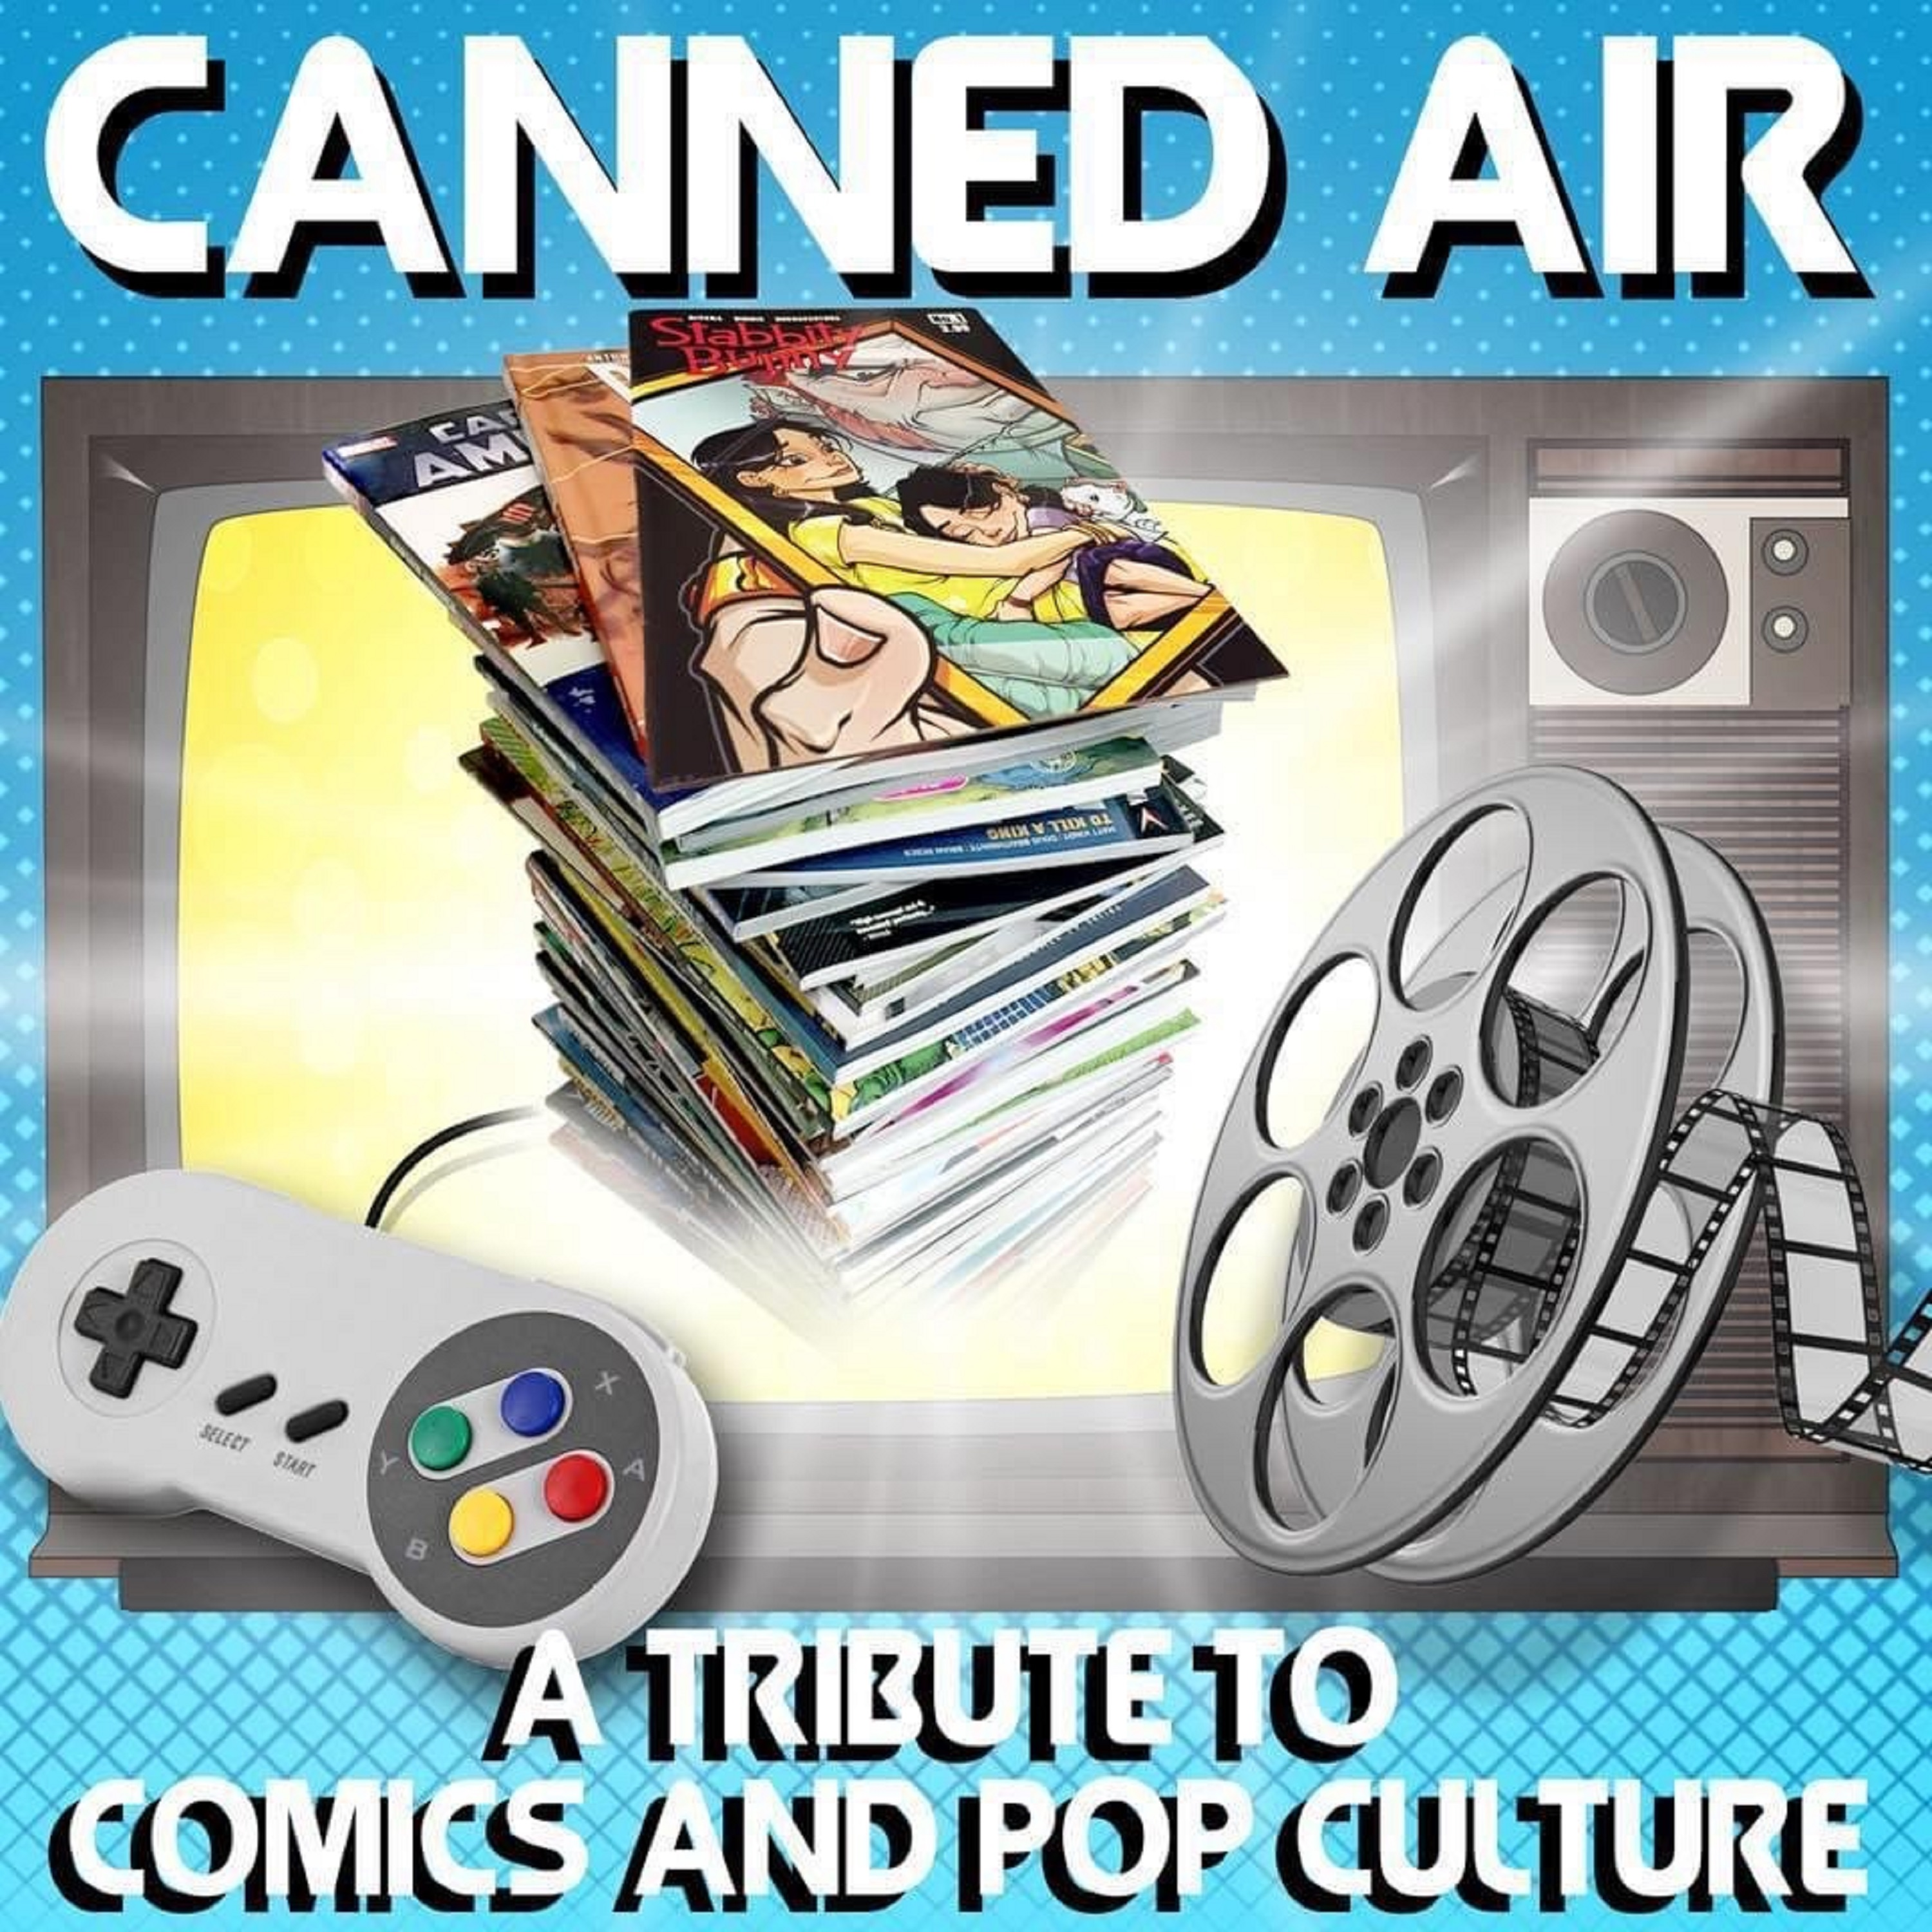 Canned Air: A Tribute to Comics and Pop Culture show art